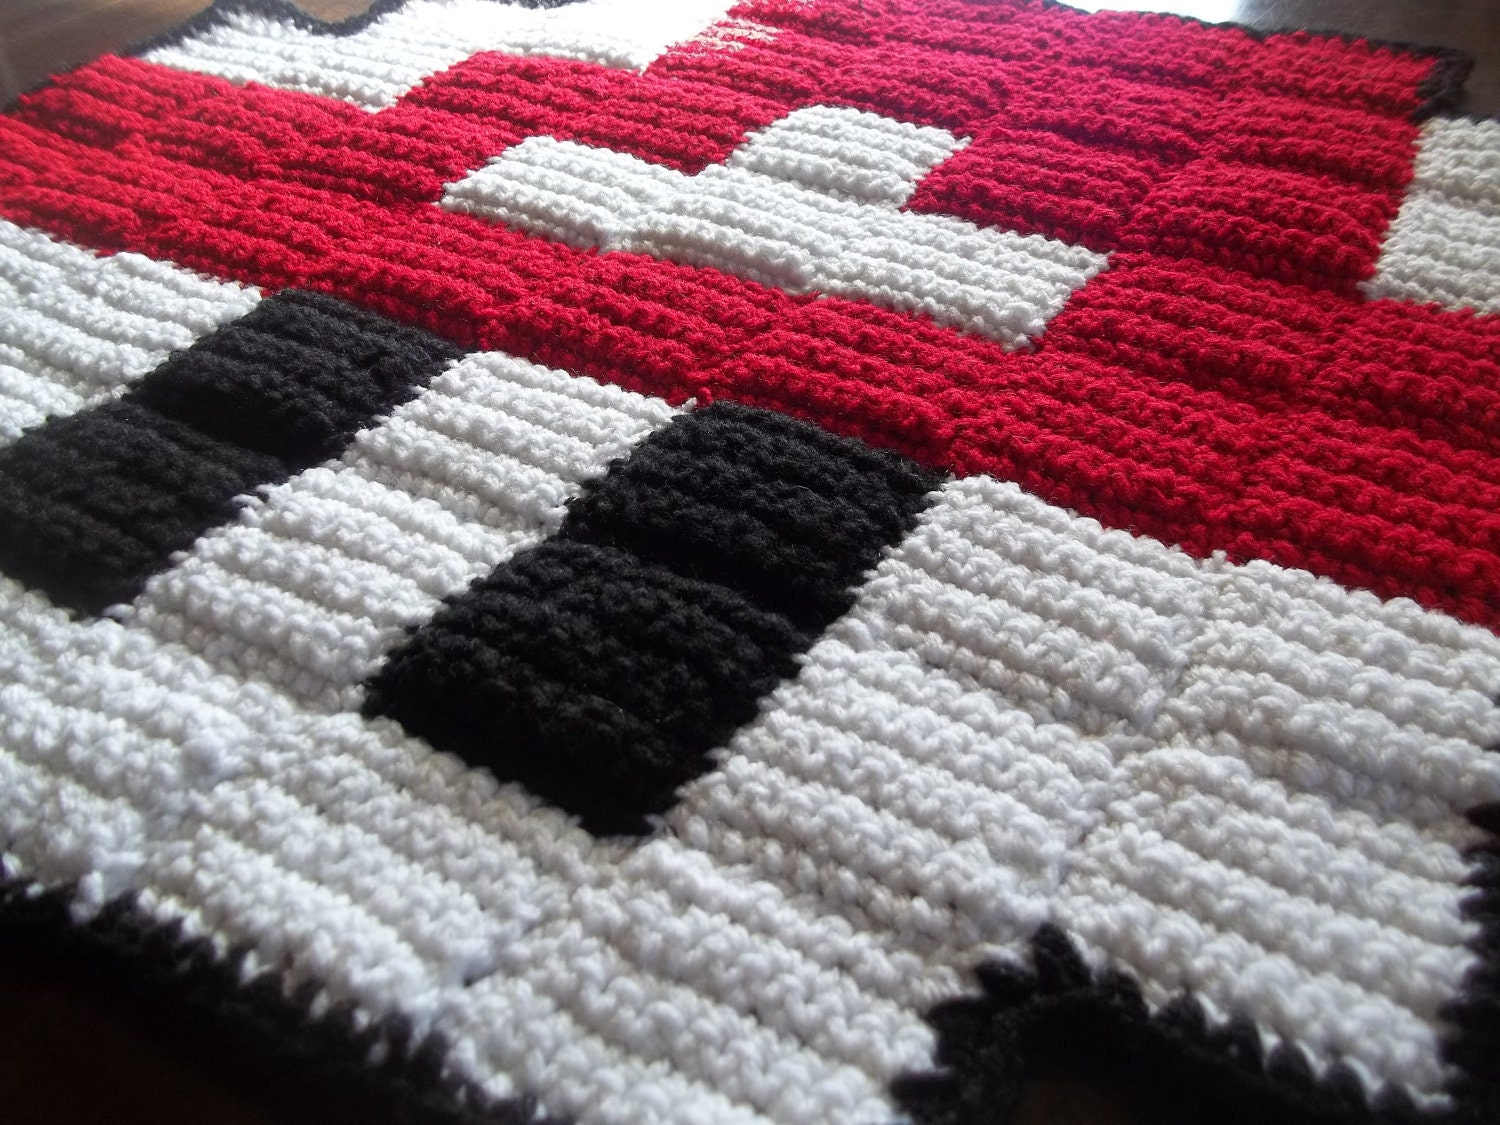 Giant 8 bit xbox controller rug by harmonden on etsy Controller rug